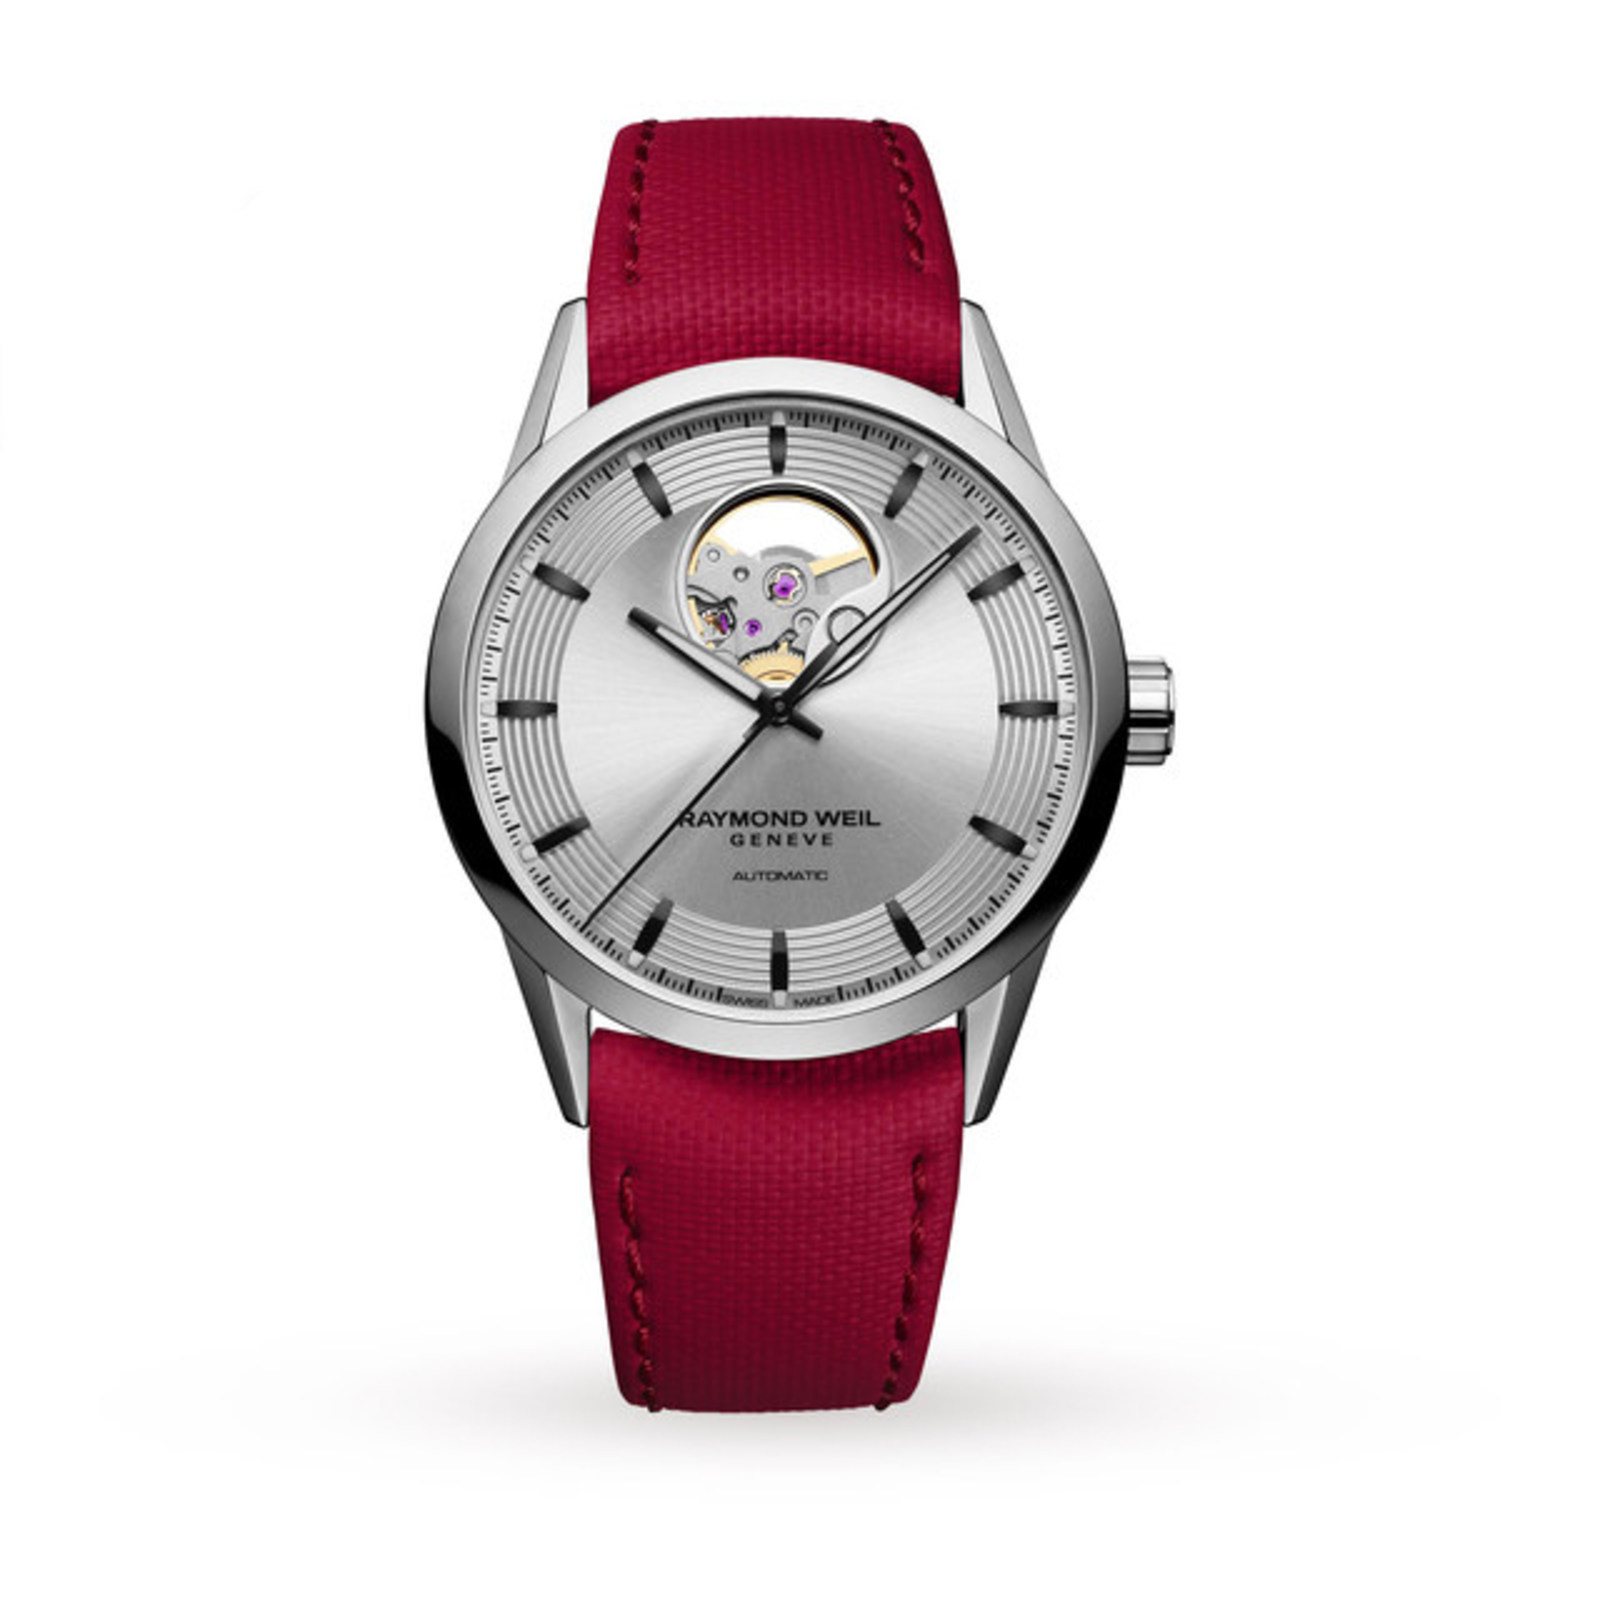 Raymond Weil Ladies' Freelancer BRIT Awards 2015 Limited Edition Automatic Watch